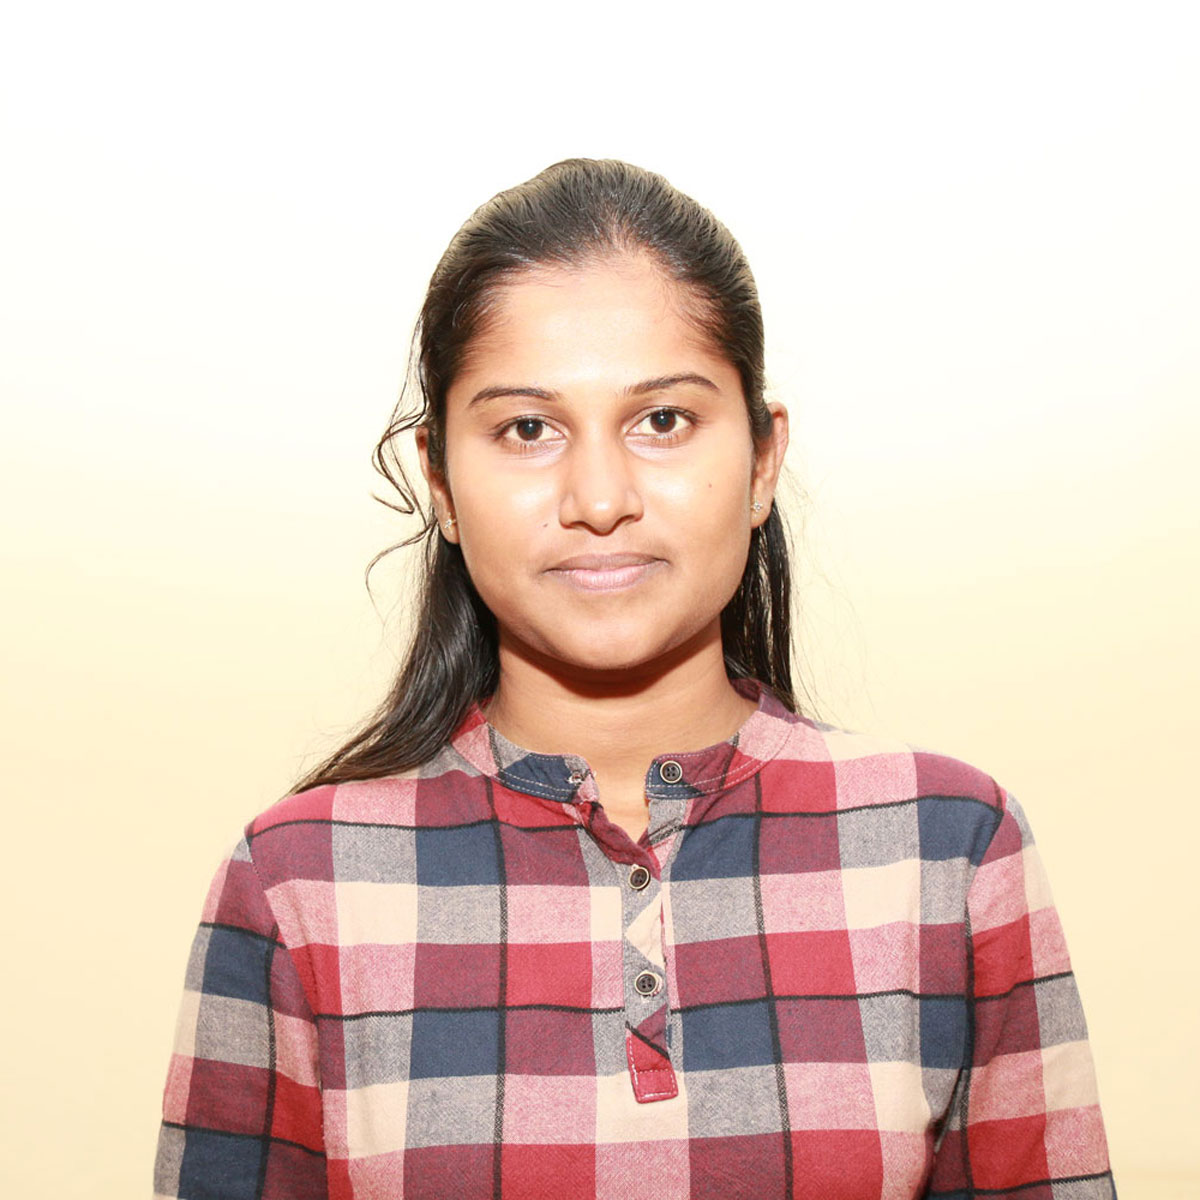 Ms. A.M. Wickramasinghe